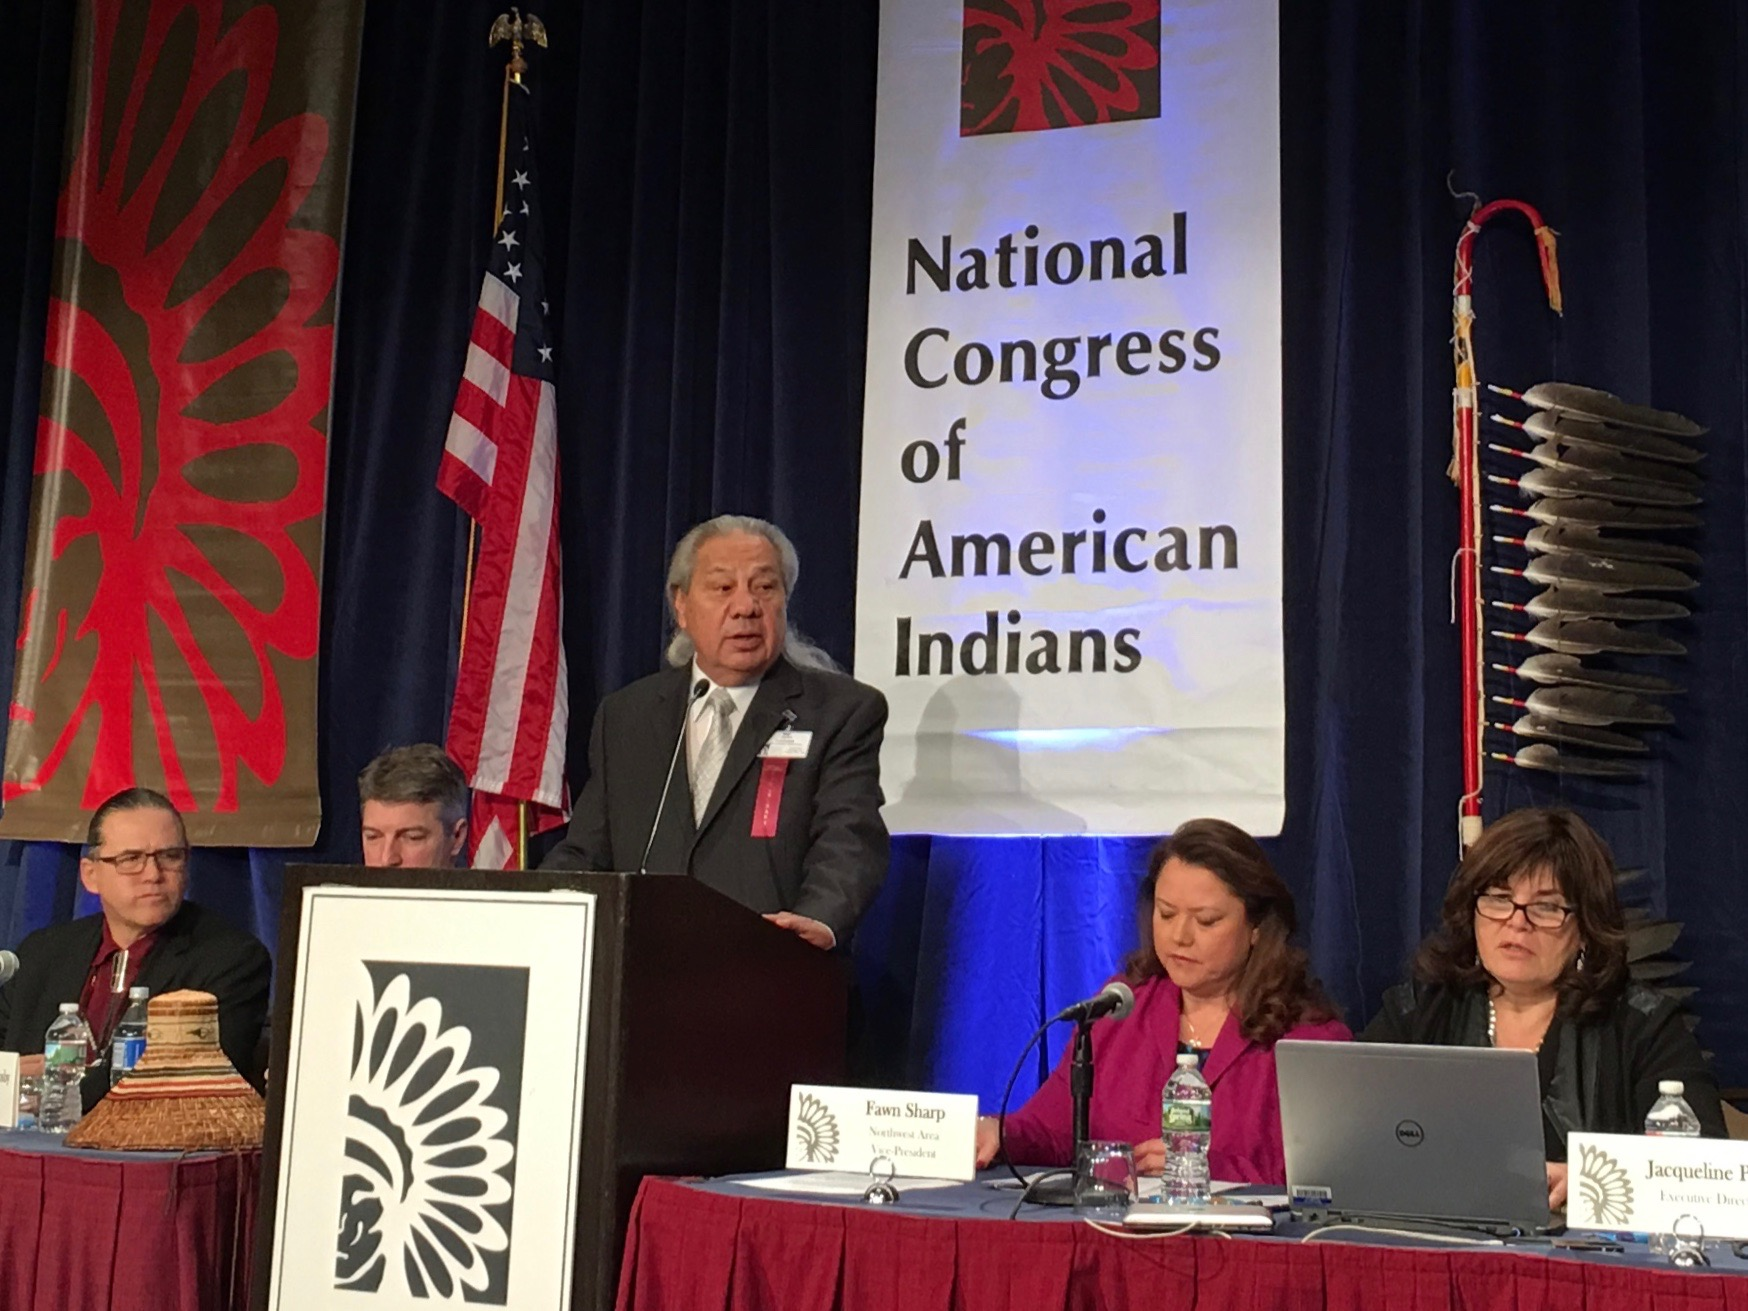 Updates from Day 2 of National Congress of American Indians winter session in D.C.